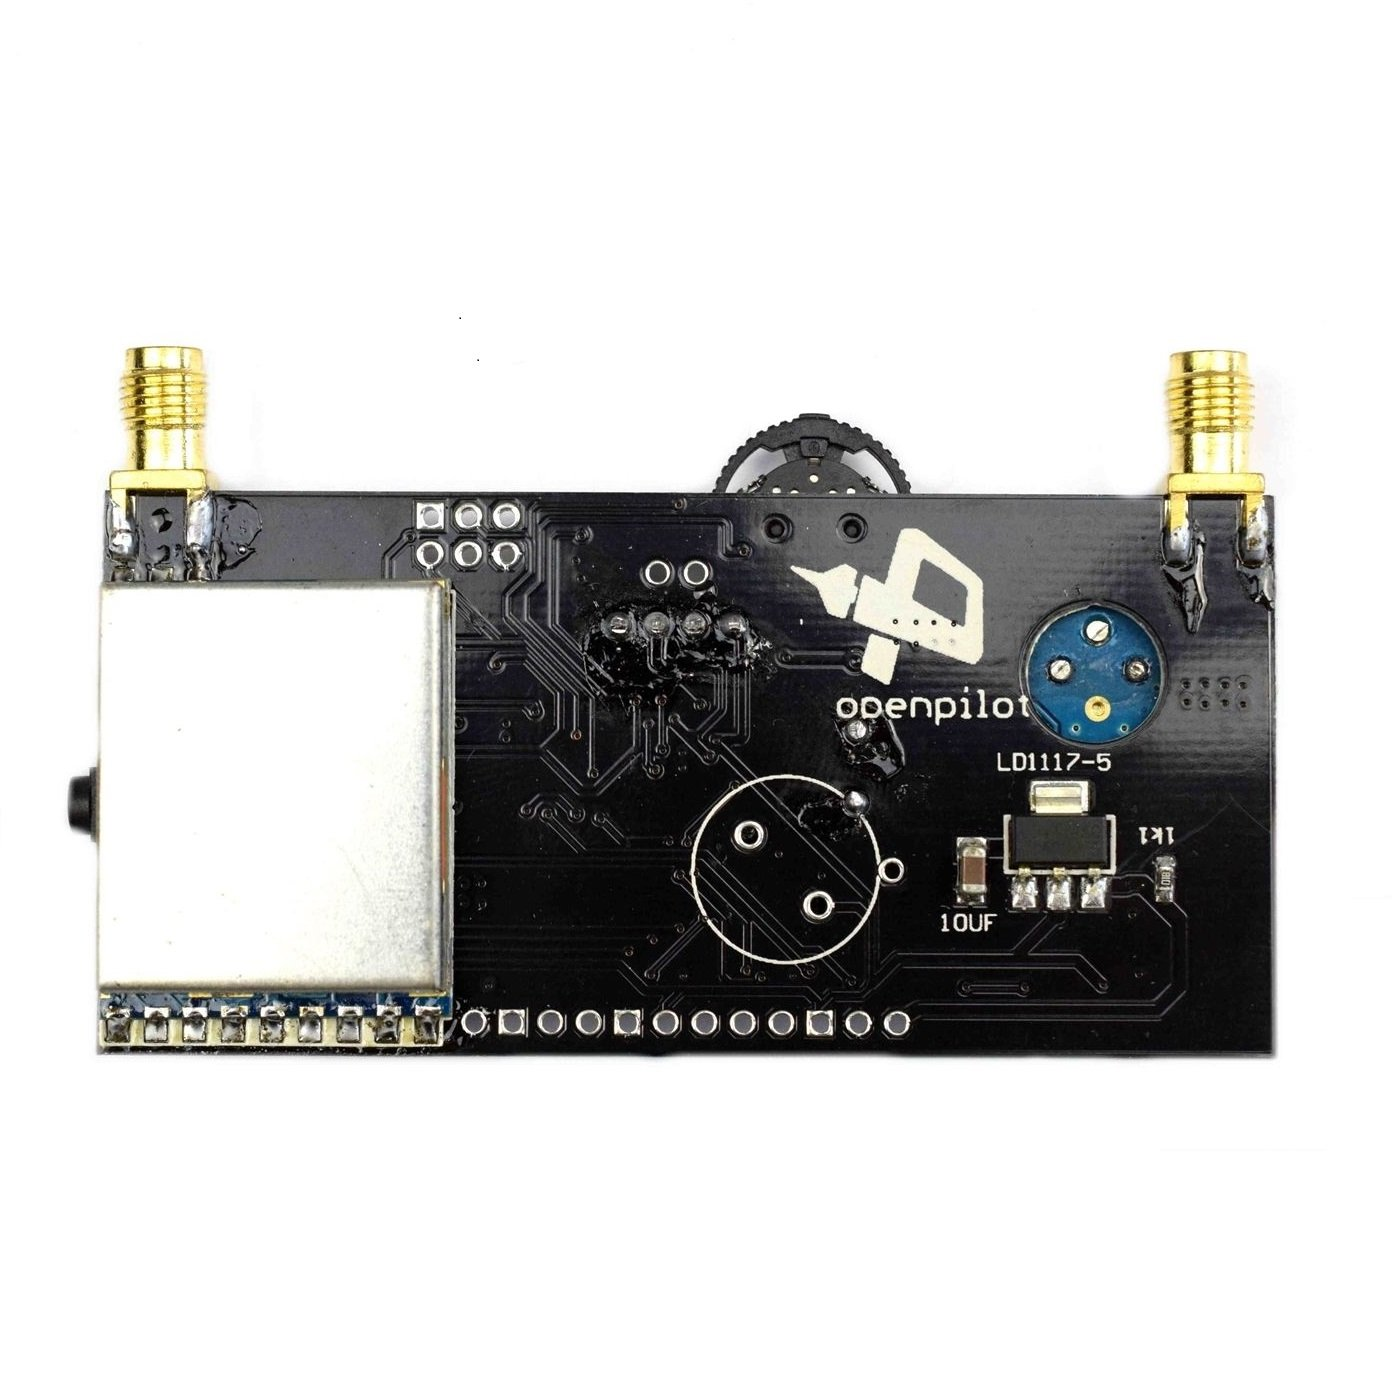 DIYRX58085.8G 40CH diversity FPV receiver with OLED display for FPV racer Quad